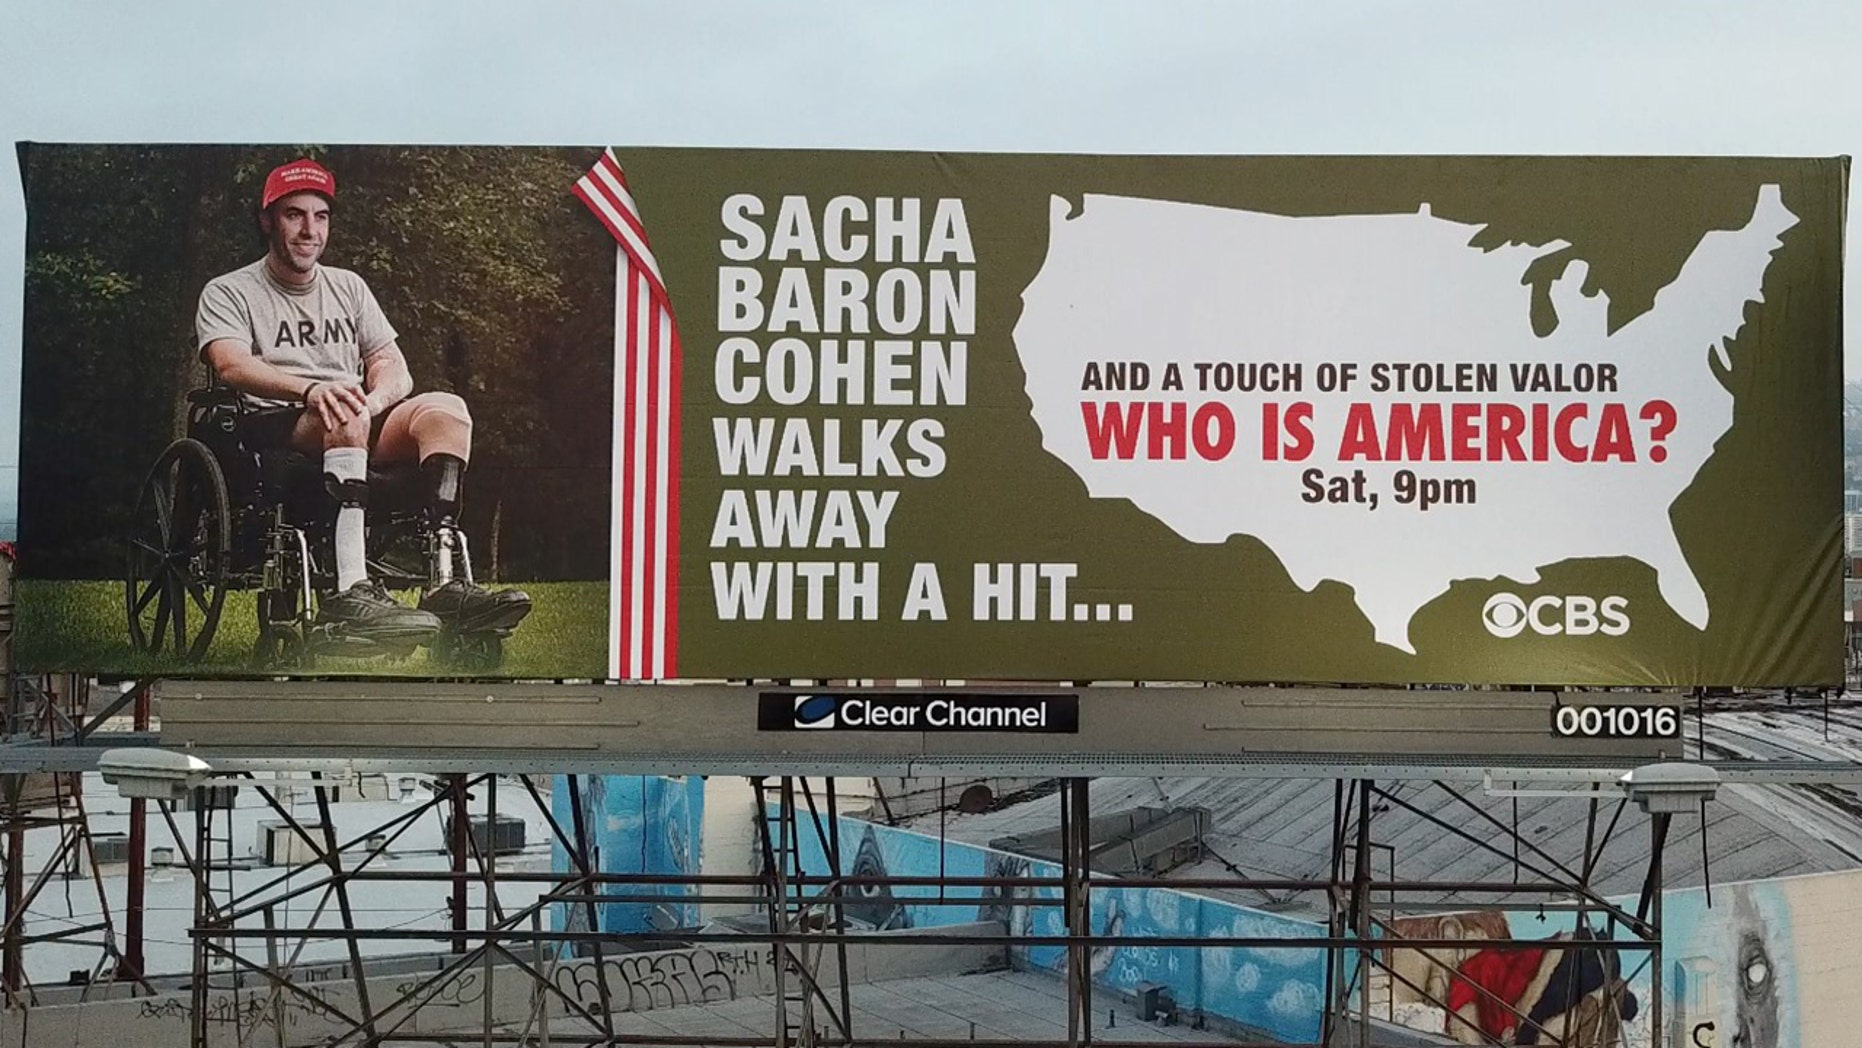 Street artist Sabo has posted a billboard that accuses Sacha Baron Cohen of stolen valor.